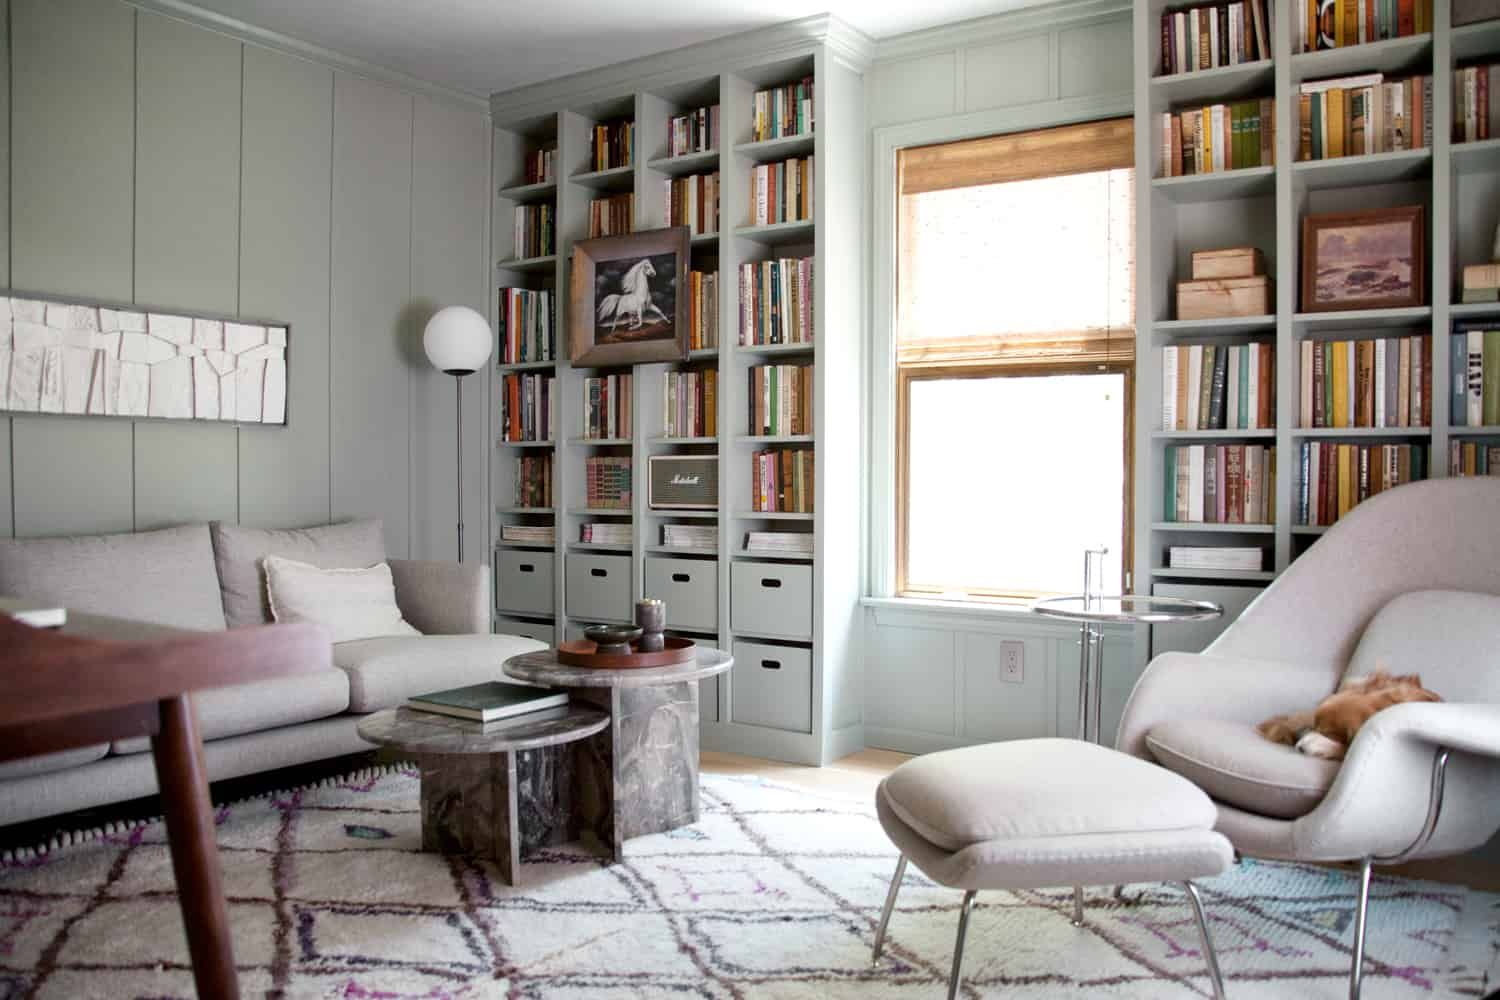 A living room with built-in bookshelves